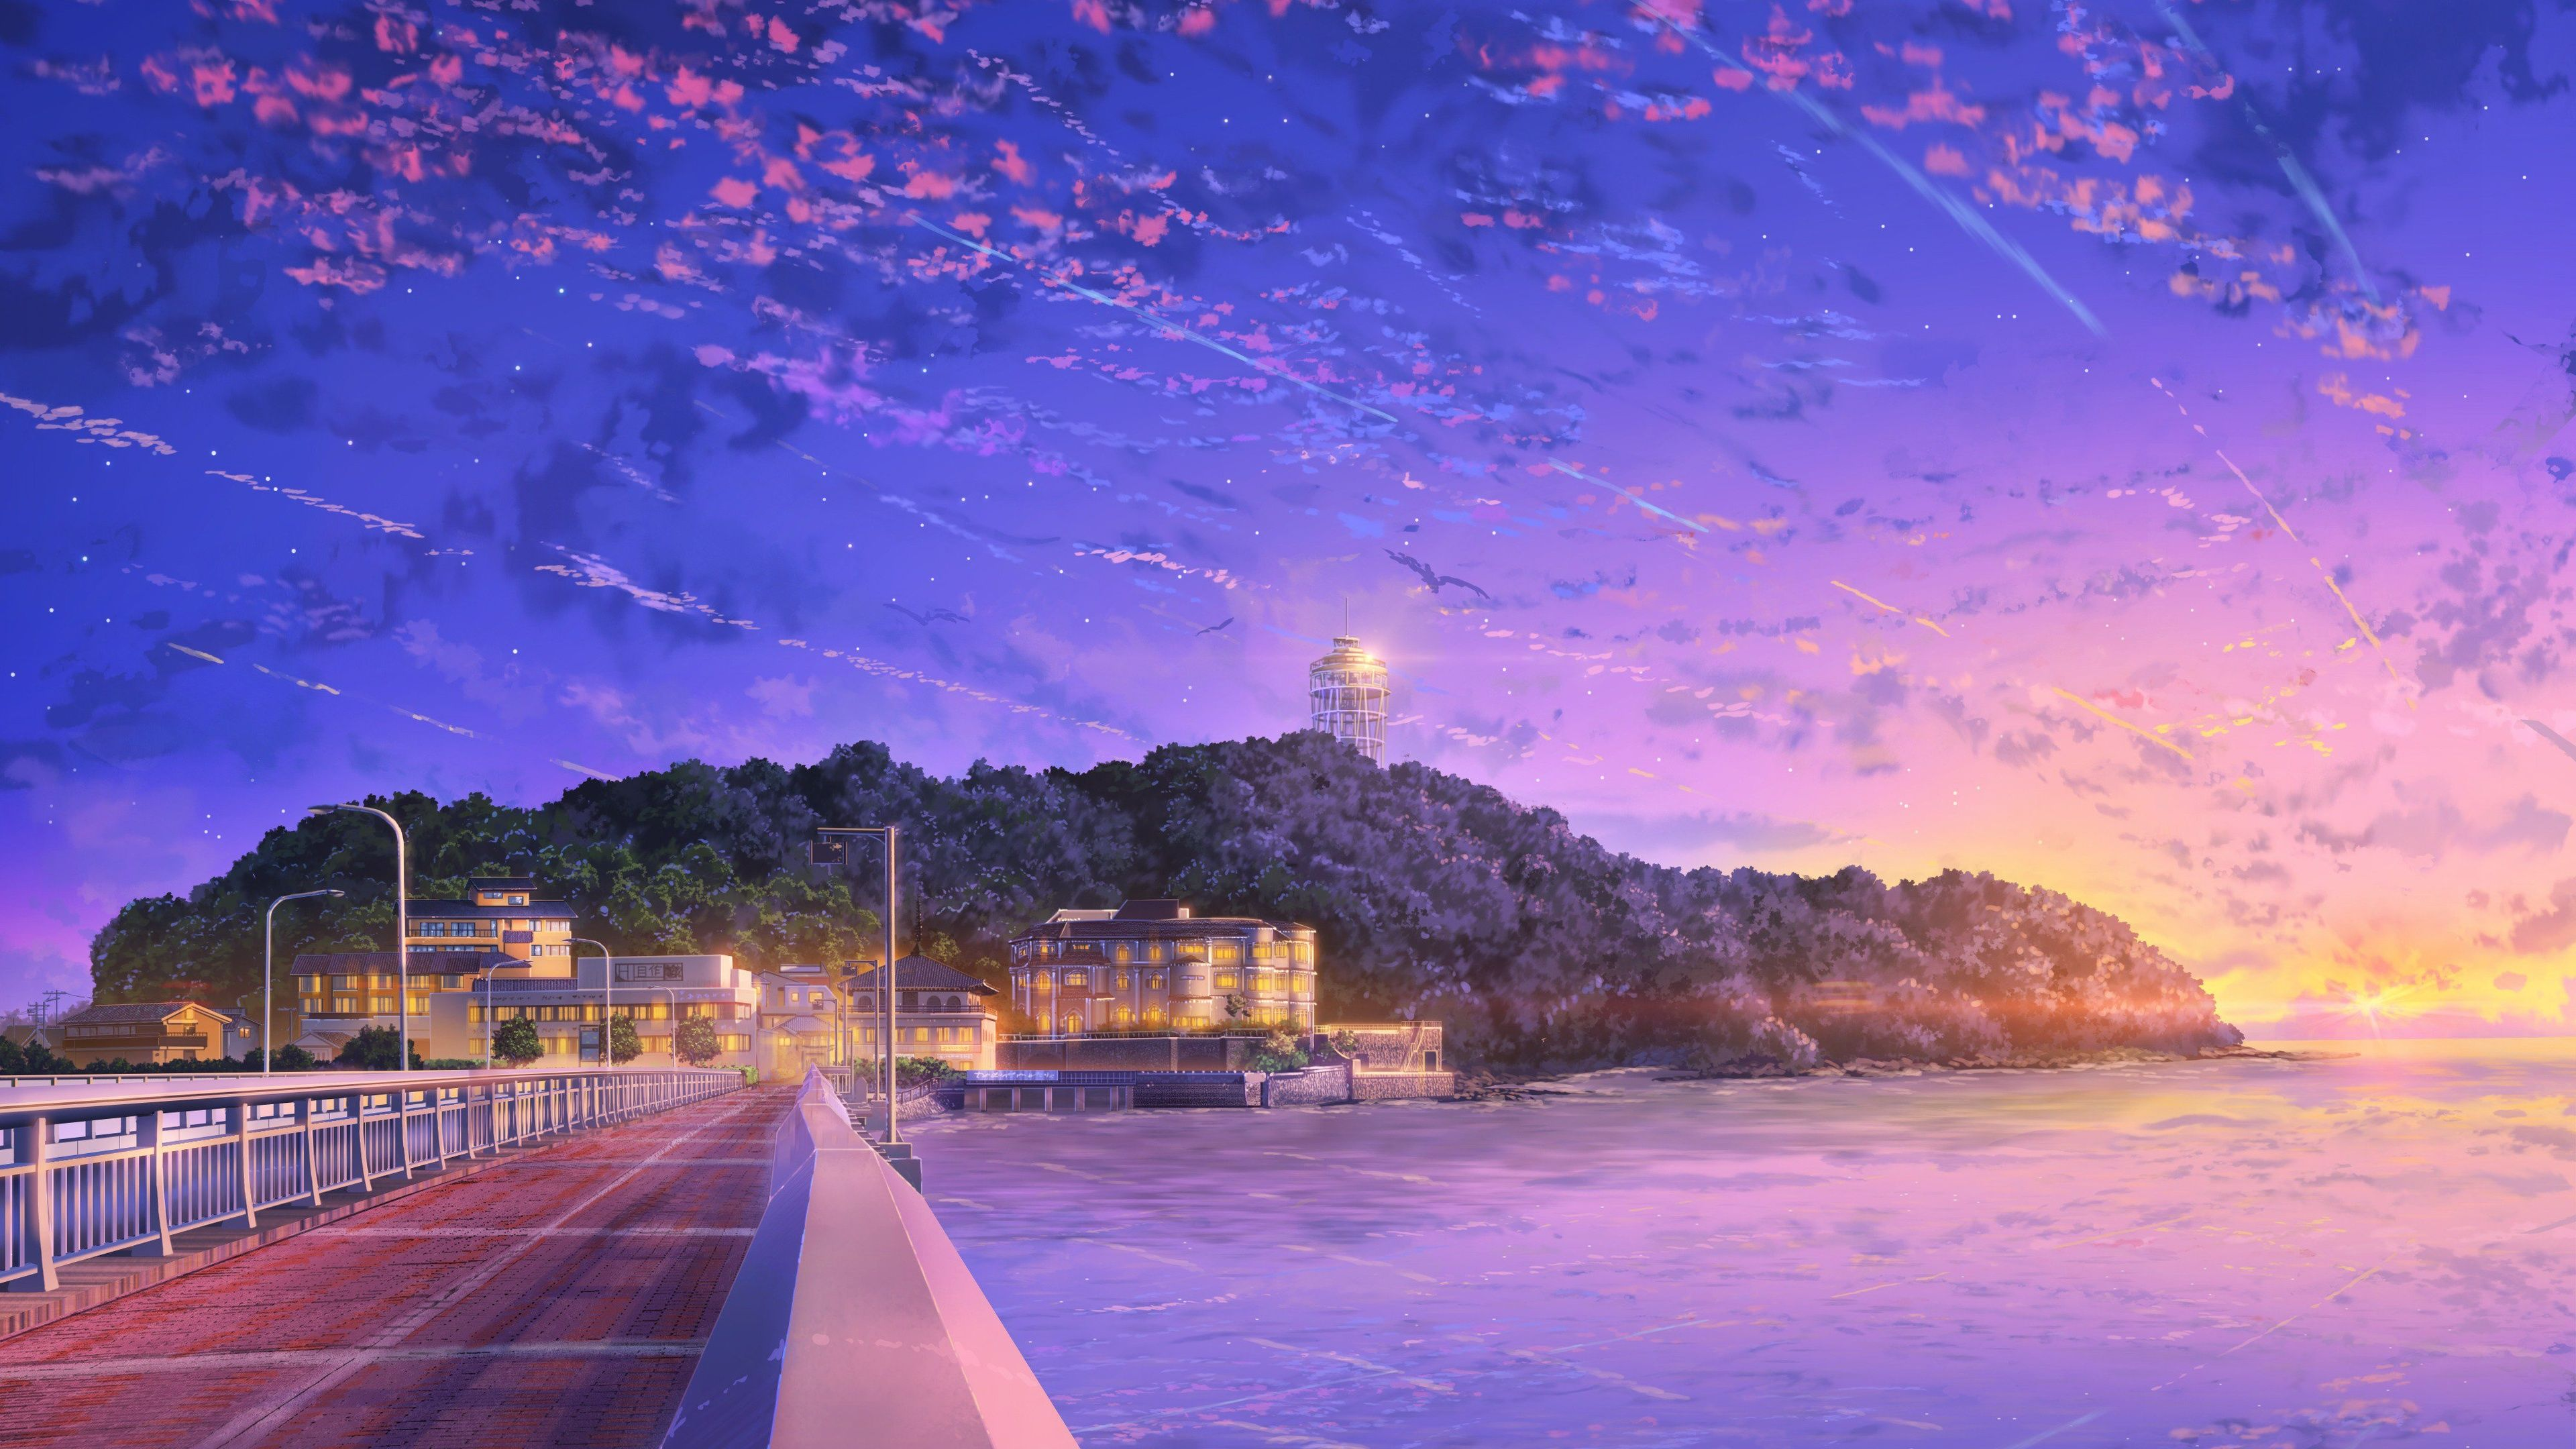 Japan Anime Sky Sky Wallpapers Japan Wallpapers Hd Wallpapers Anime Wallpapers 4k Wallpapers In 2020 Anime Backgrounds Wallpapers Scenery Wallpaper Anime Scenery